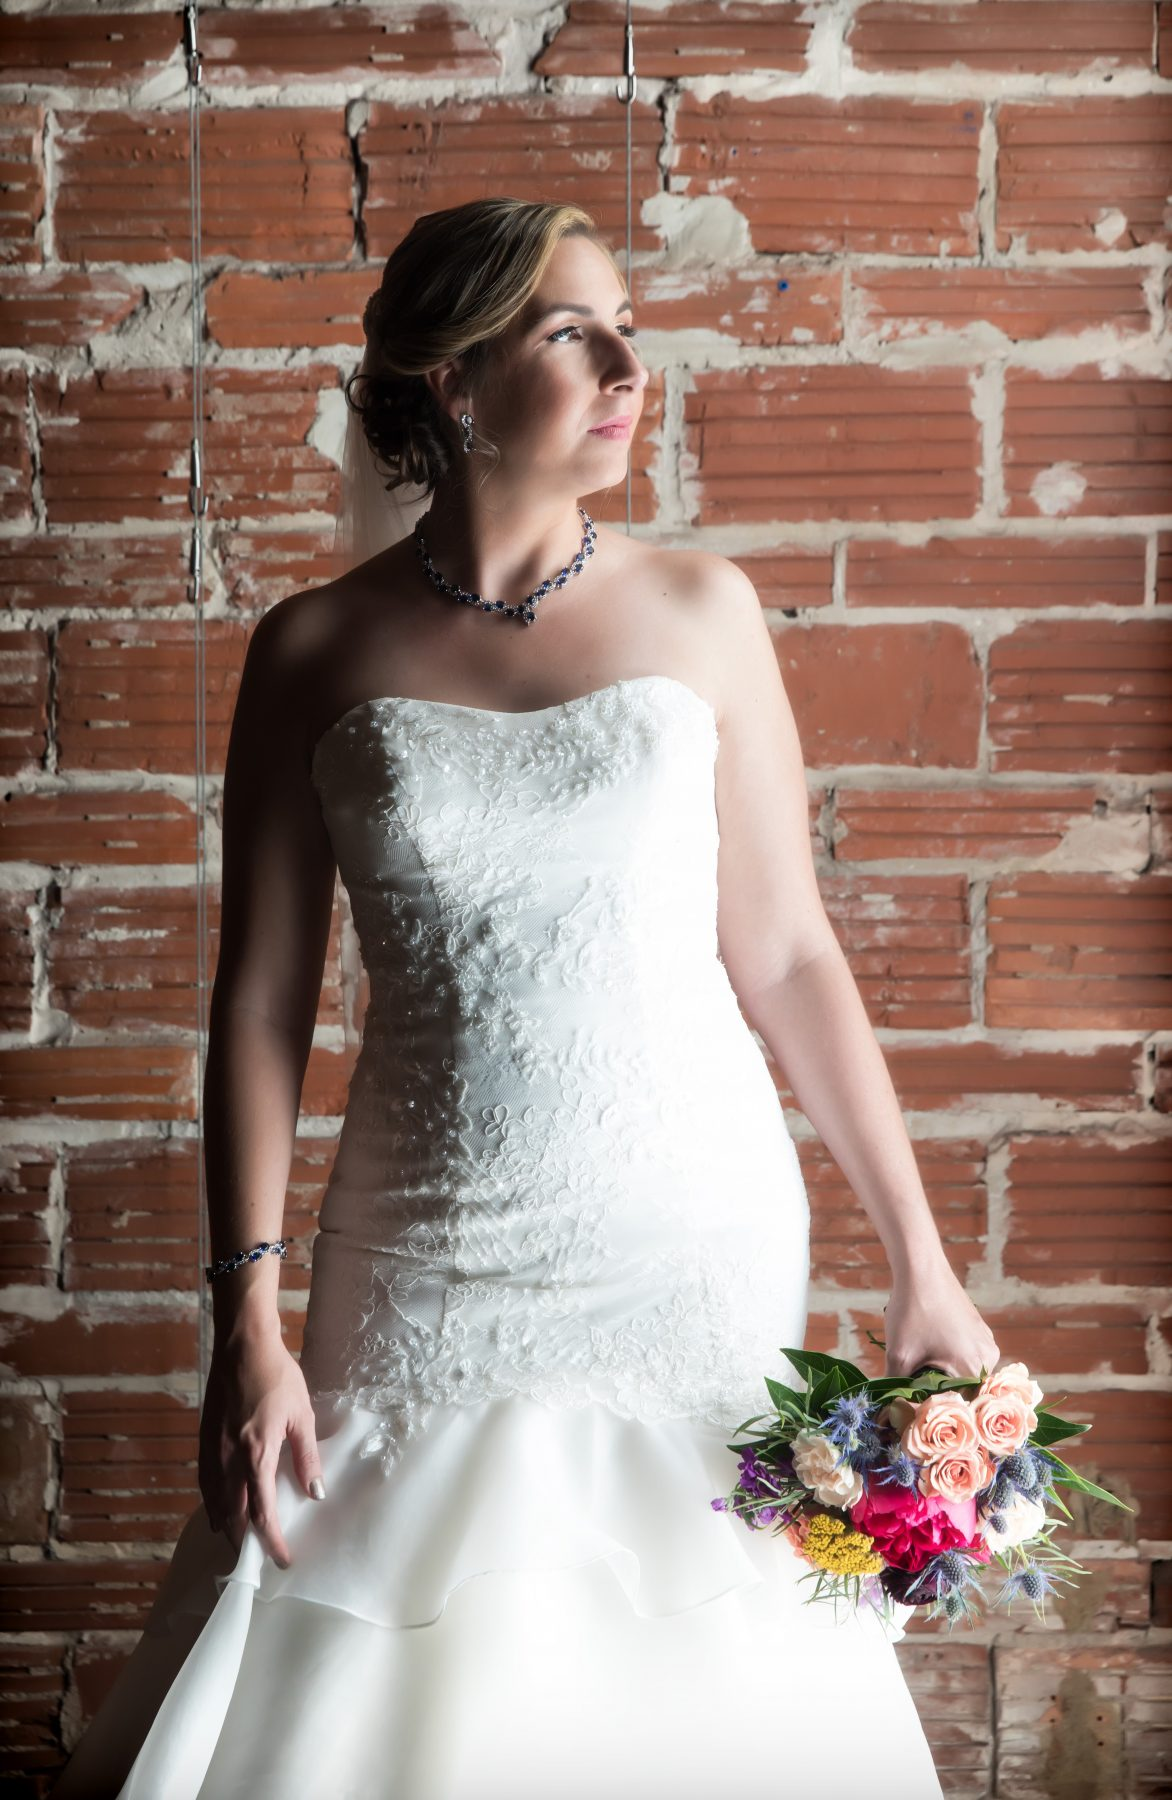 Vintage Florida Bride with Colorful Bridal Bouquet against Exposed Red Brick Wall | Downtown St. Pete Unique Wedding Venue NOVA 535